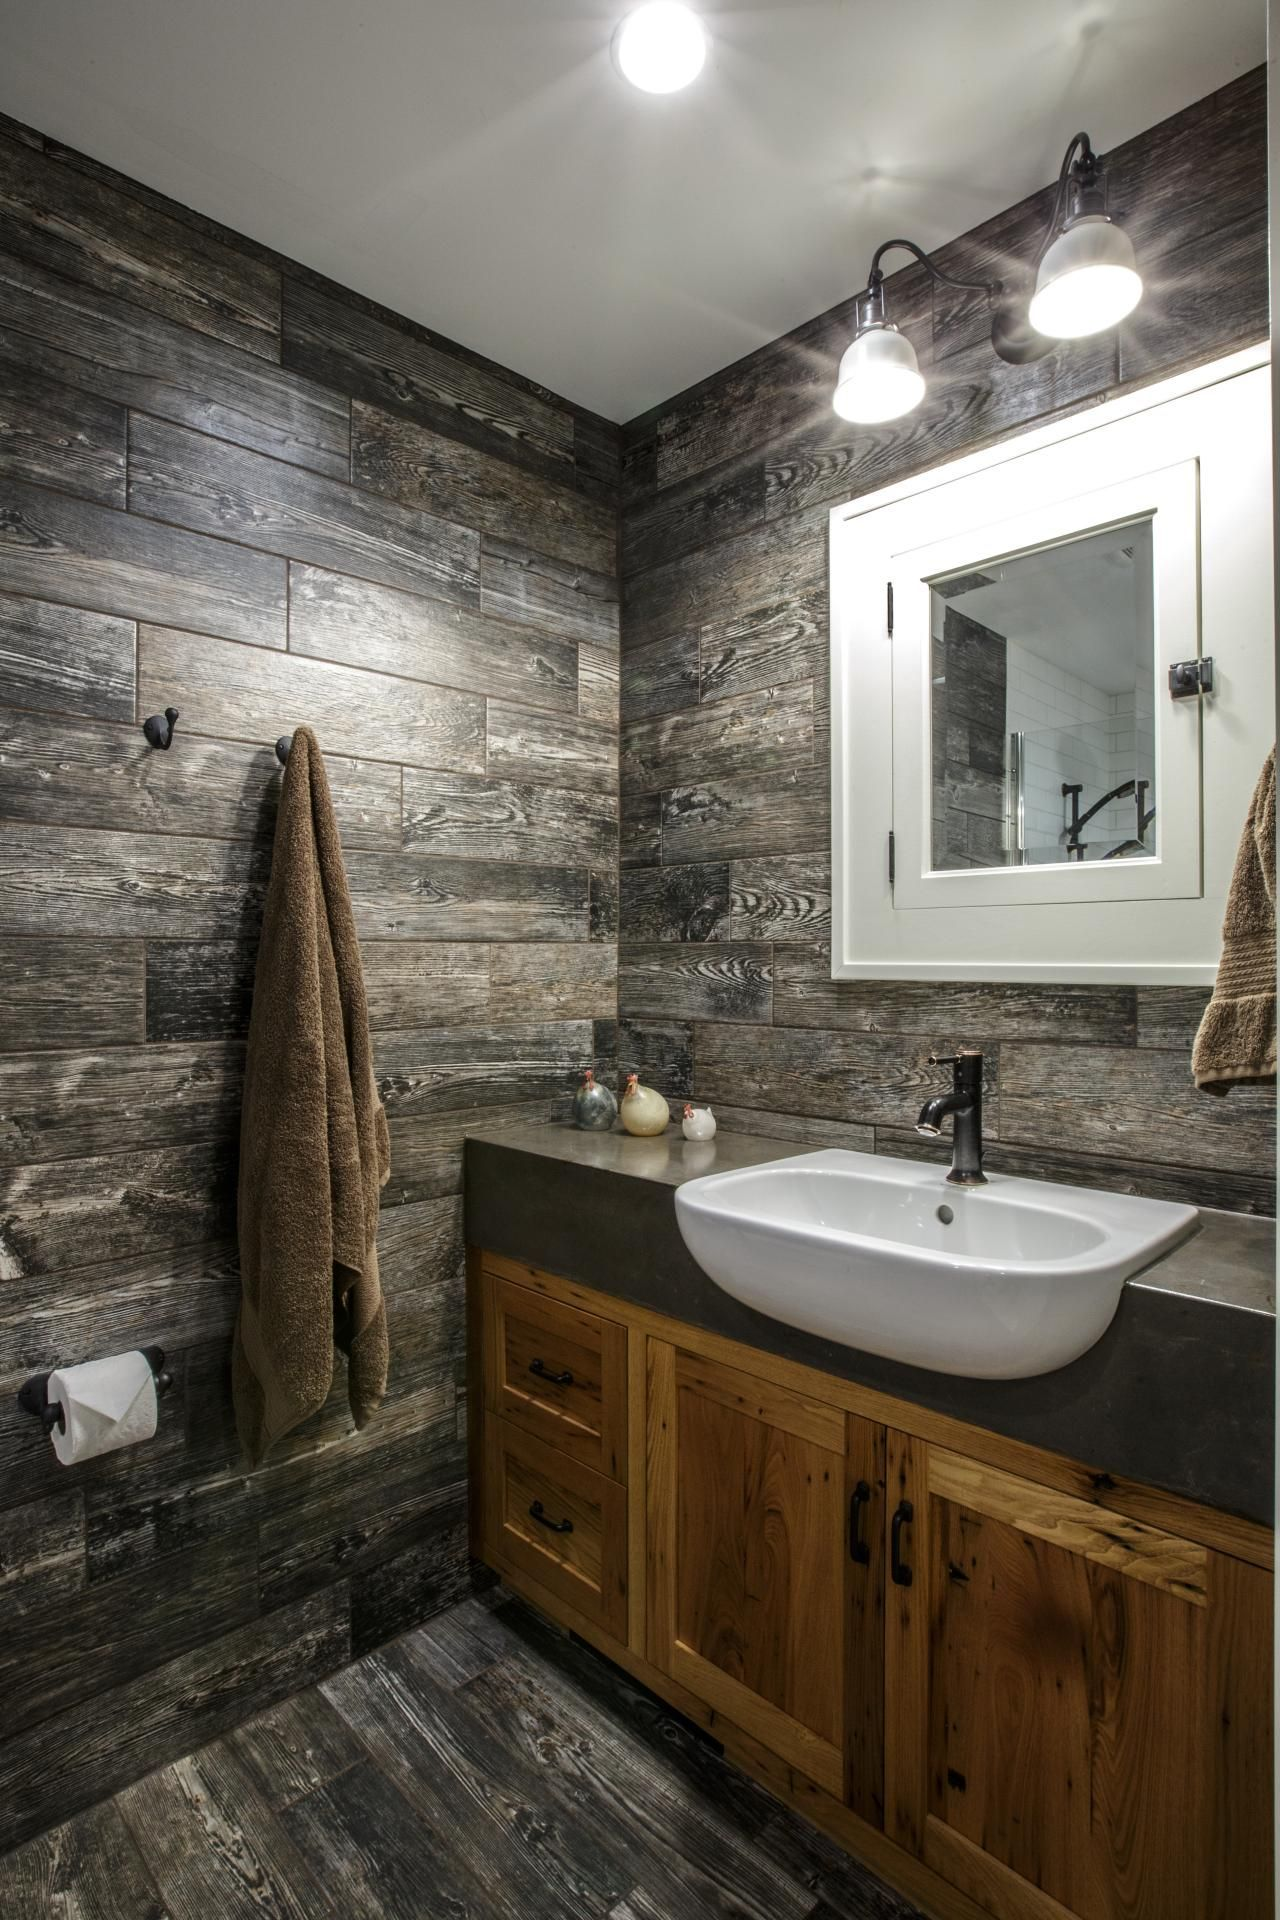 20 Best Basement Bathroom Ideas On Budget Check It Out Best Gallery Ever If You Want To M Rustic Master Bathroom Rustic Bathrooms Rustic Bathroom Designs